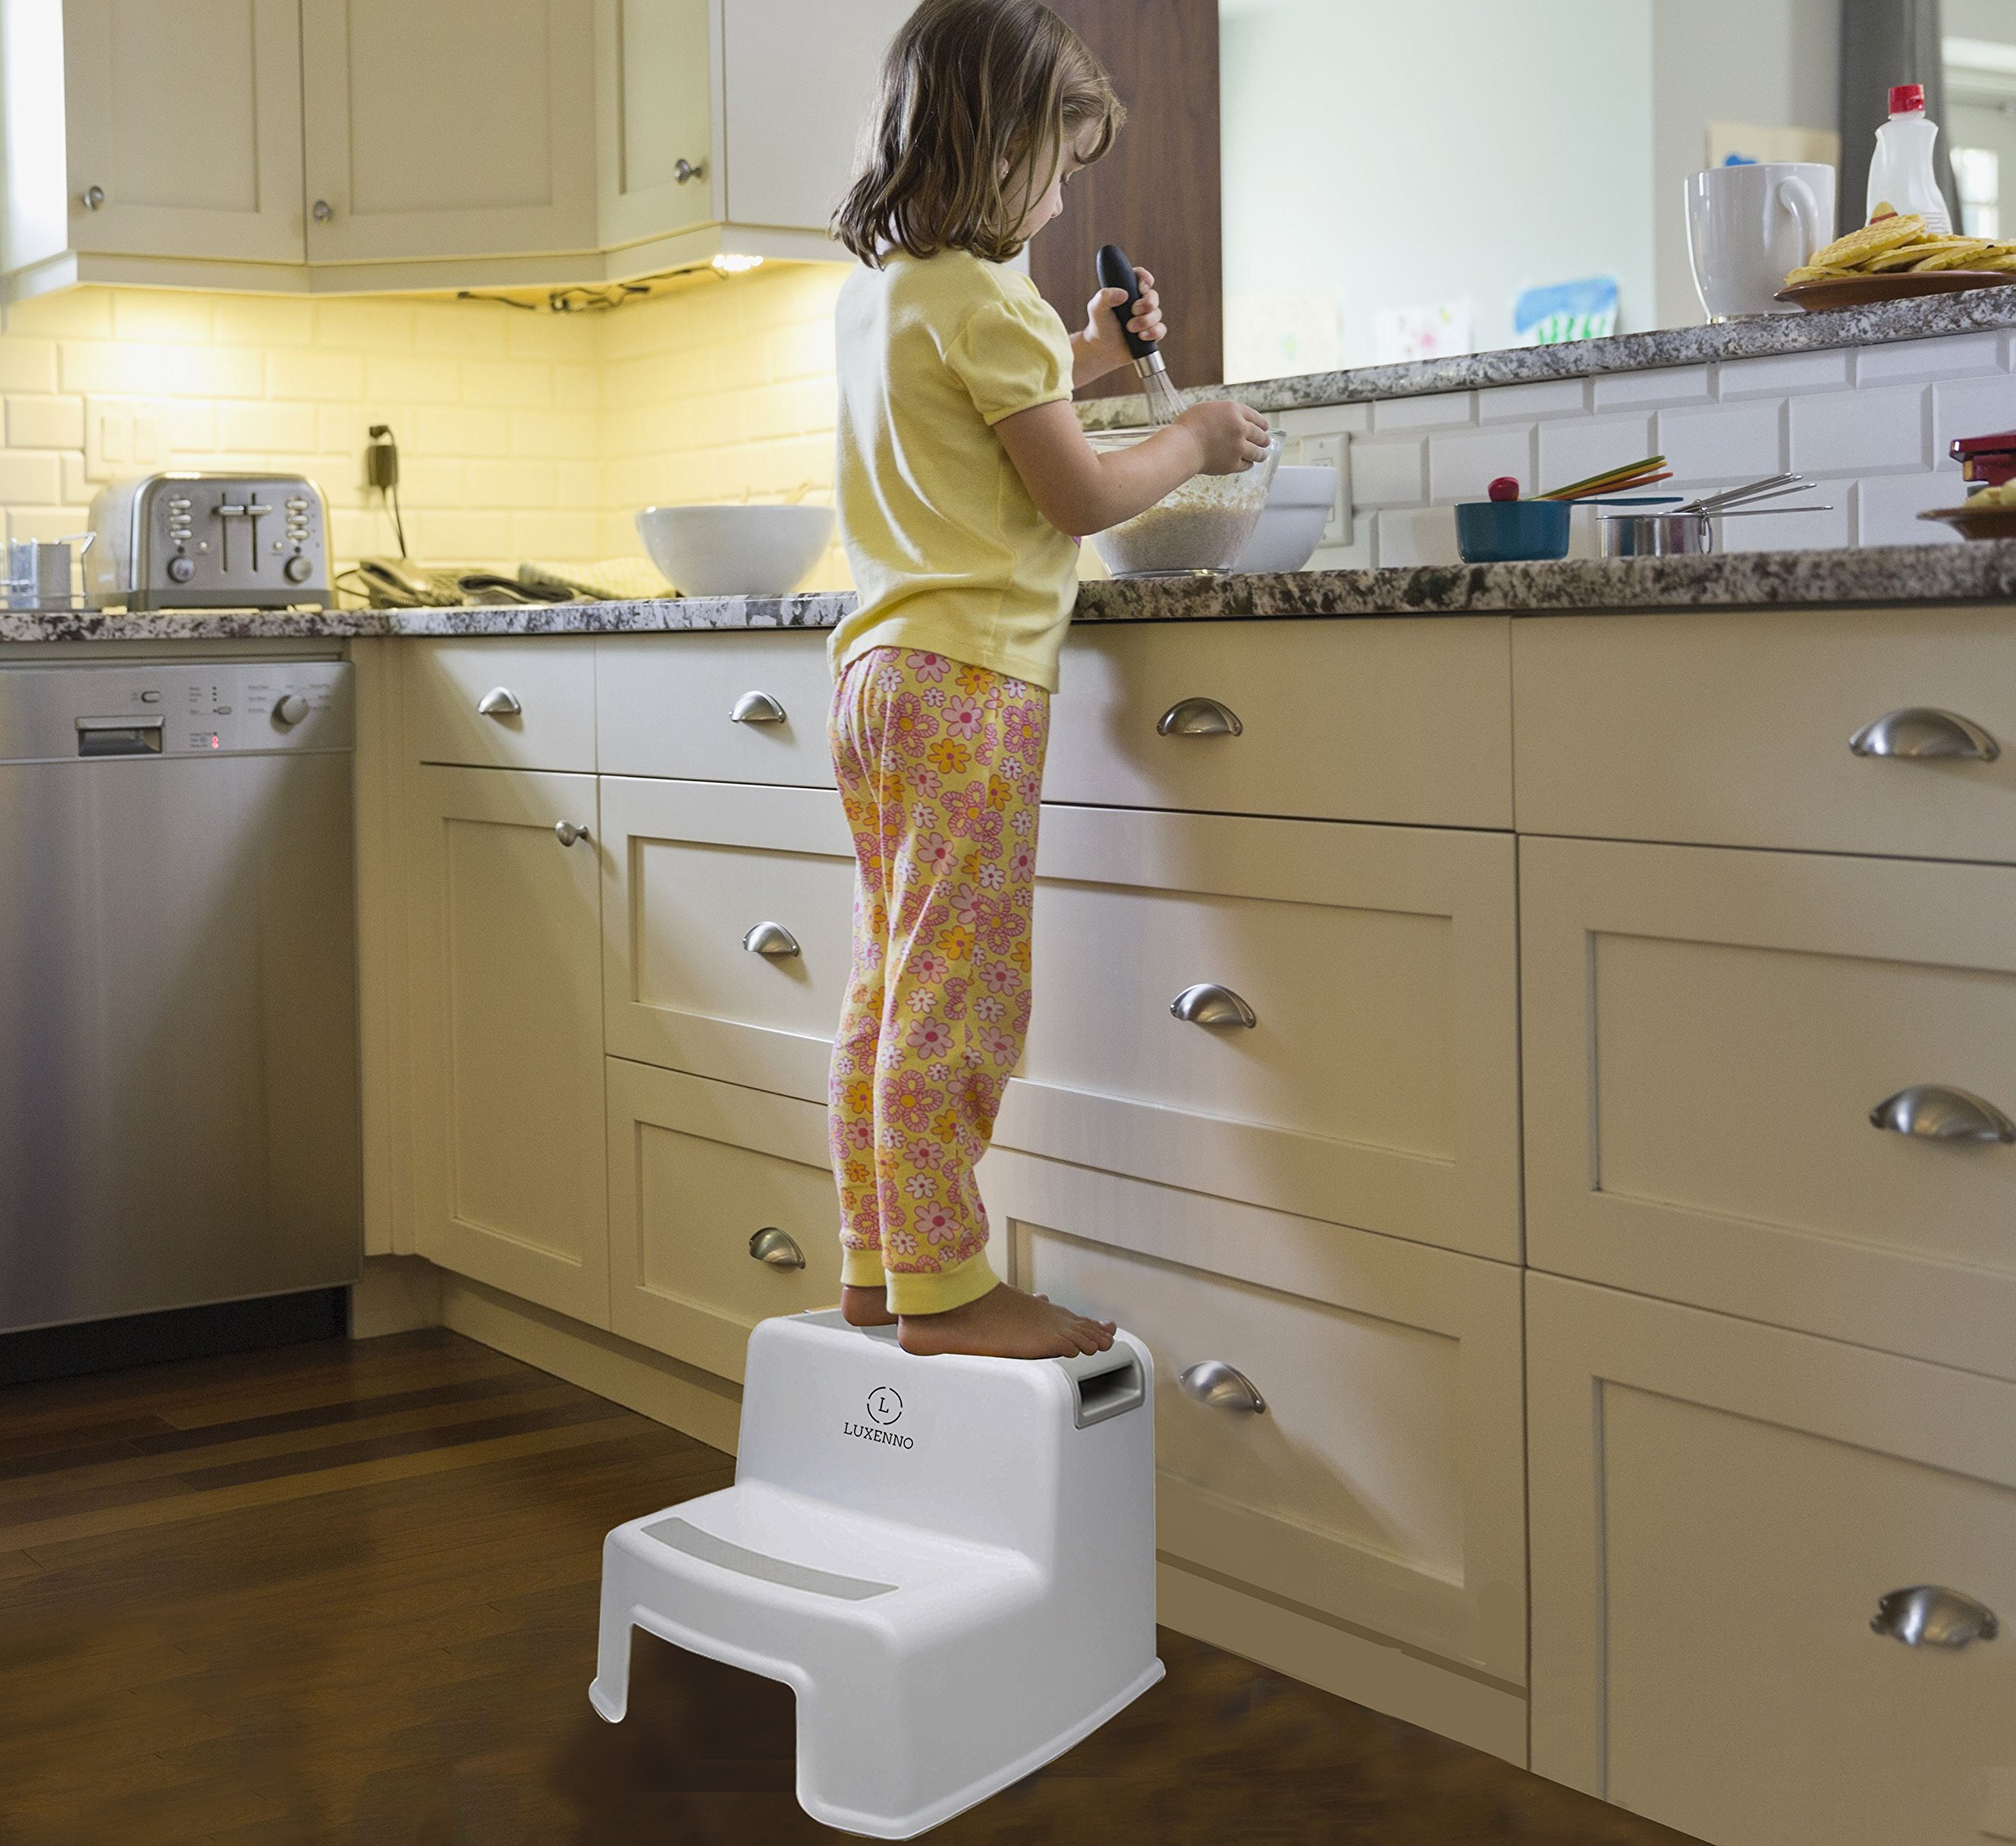 (2 Pack) Dual Height Step Stool for Toddlers & Kids, Nursery Step Stool Potty Training Stool for Bathroom, Kitchen, Two-Step Design with Soft No-Slip Grips and Safe, White & Grey, by Luxenno by LUXENNO (Image #2)